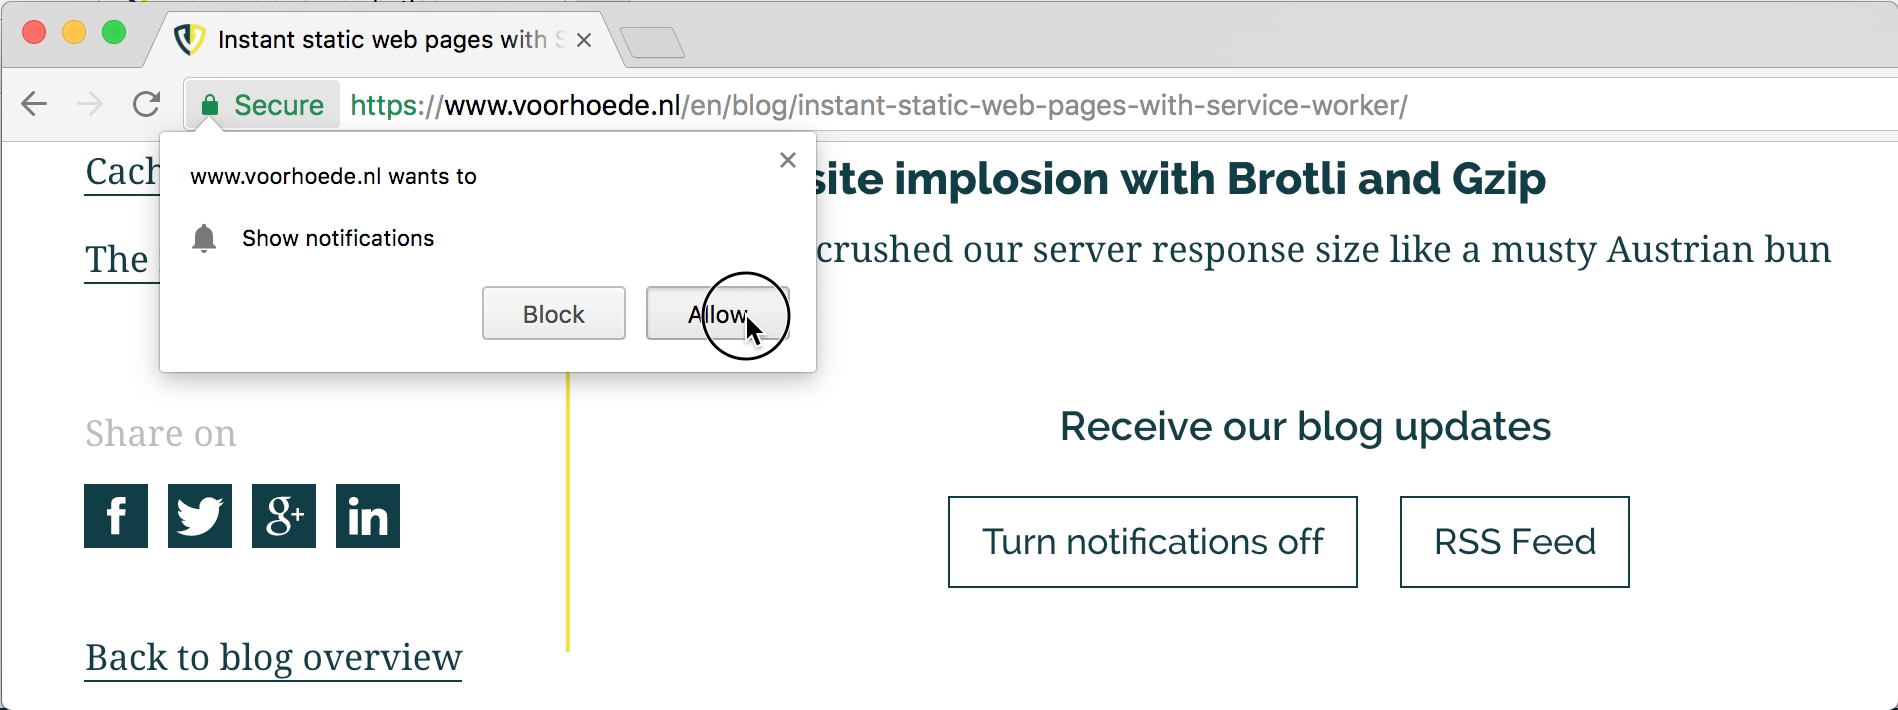 A native prompt to allow push notifications in Chrome opens on top of our website.